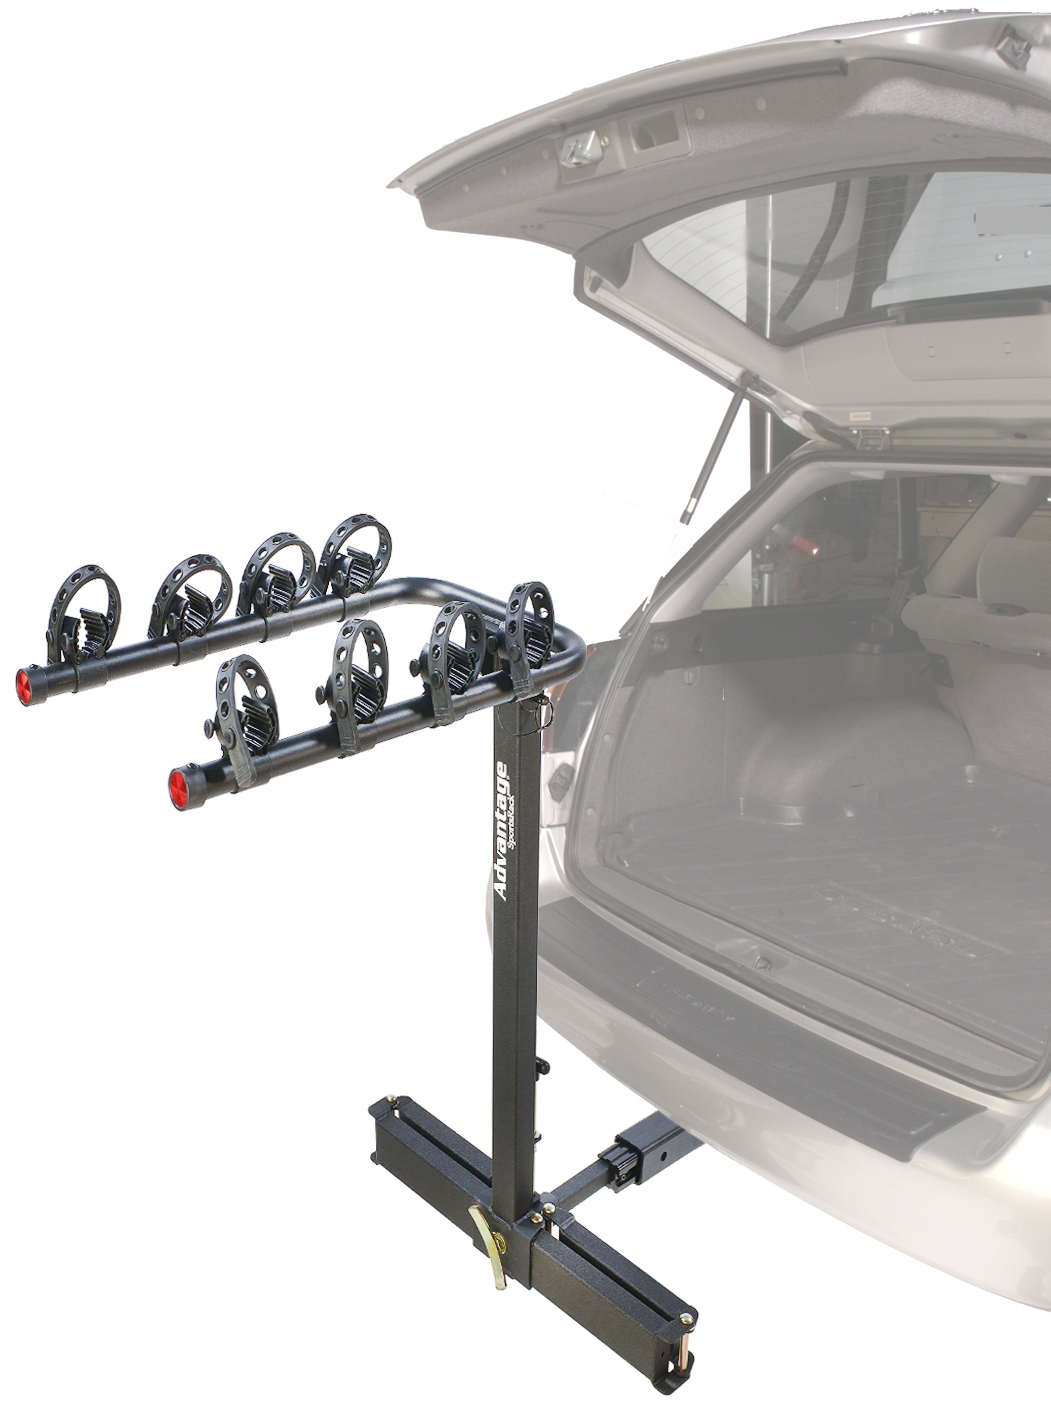 Bike Racks For Receiver deluxe bike carrier is a